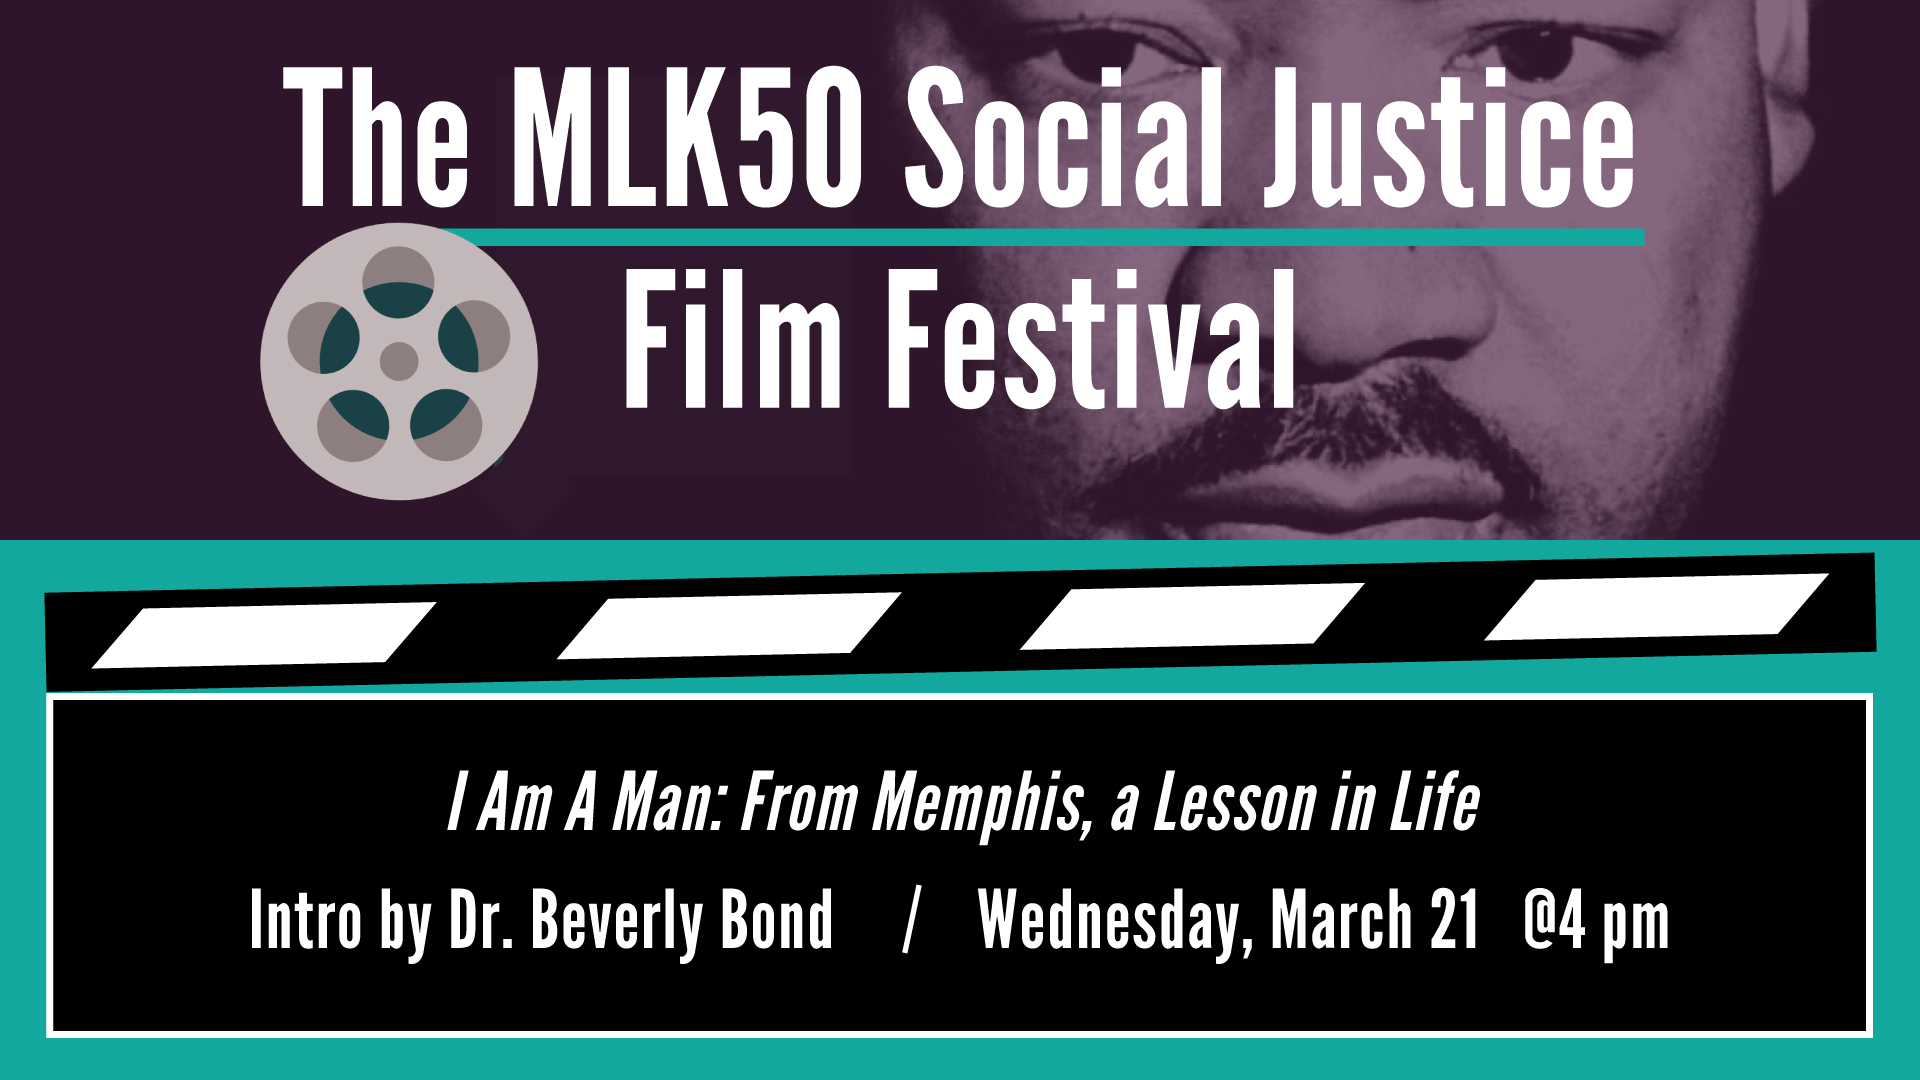 MLK50 Film Festival: I Am a Man: From Memphis, a Lesson in Life